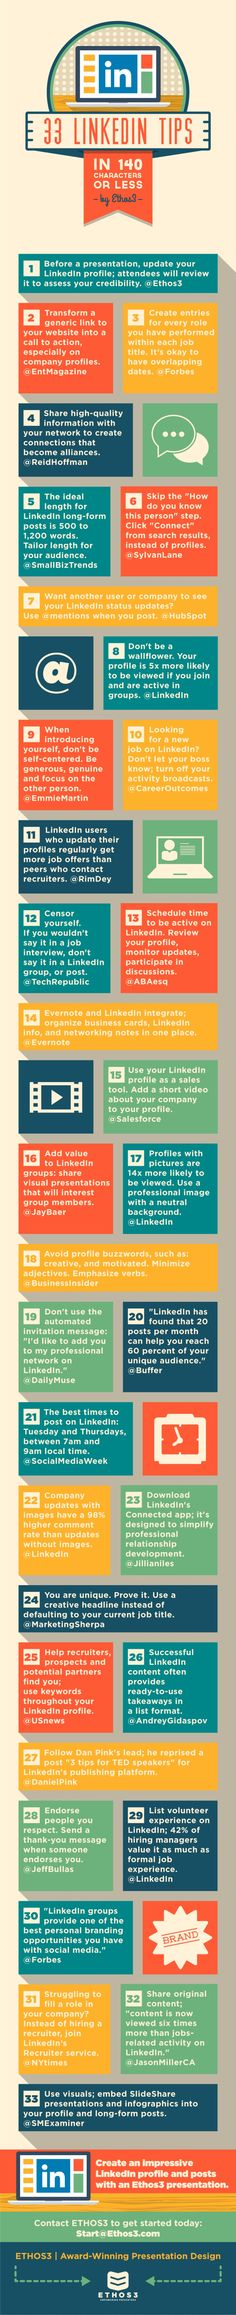 33 LinkedIn Tipps für Ihr Business  http://www.business2community.com/infographics/33-linkedin-tips-businesses-infographic-01123299